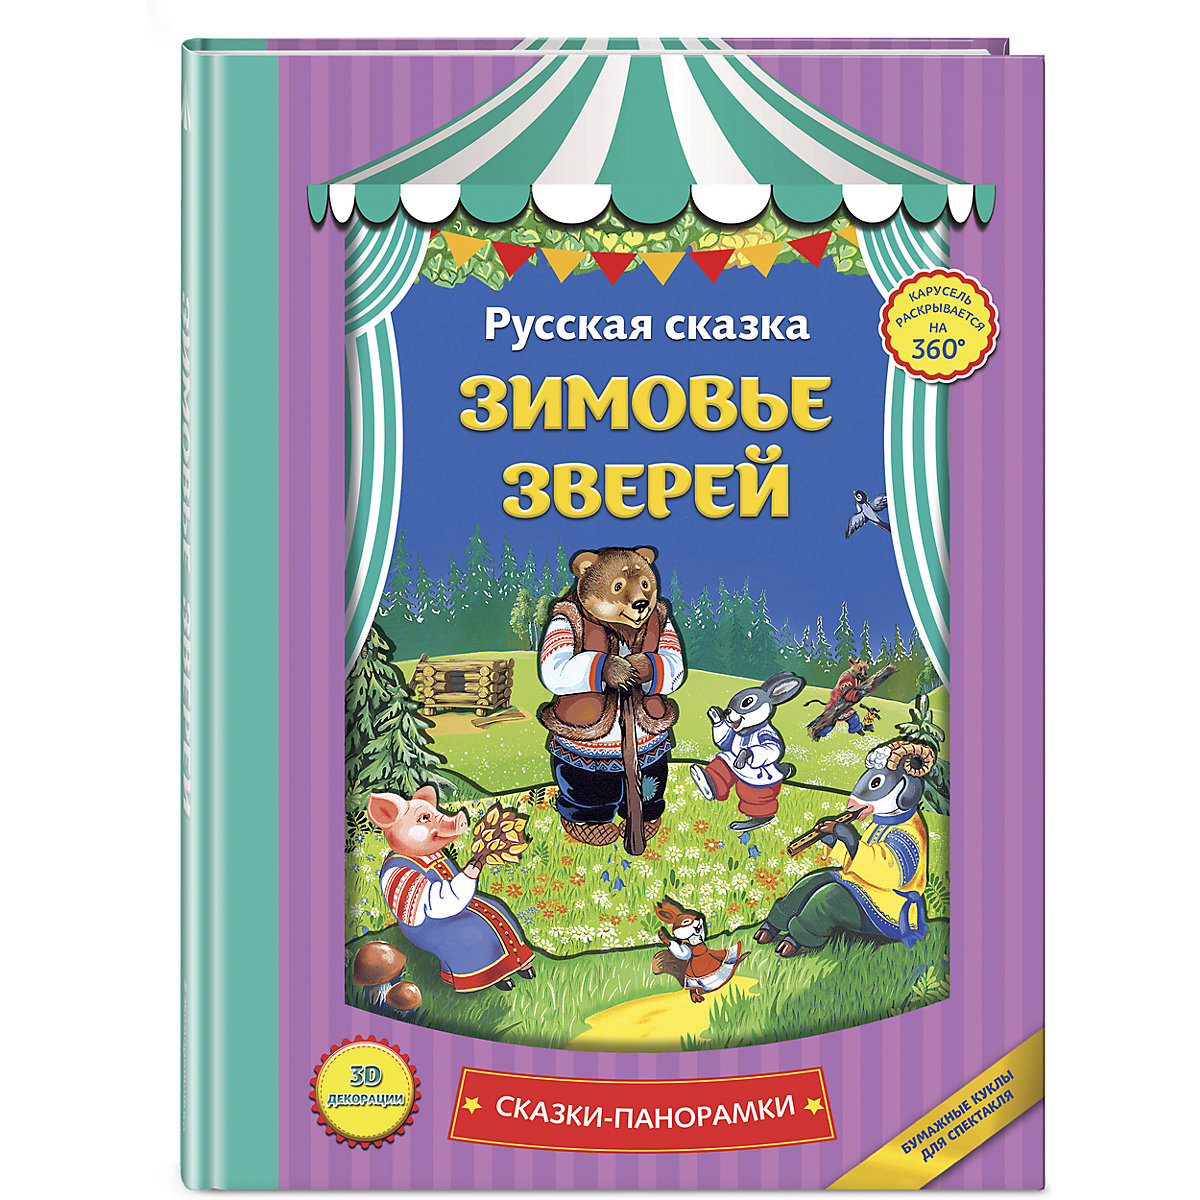 Books EKSMO 7932157 Children Education Encyclopedia Alphabet Dictionary Book For Baby